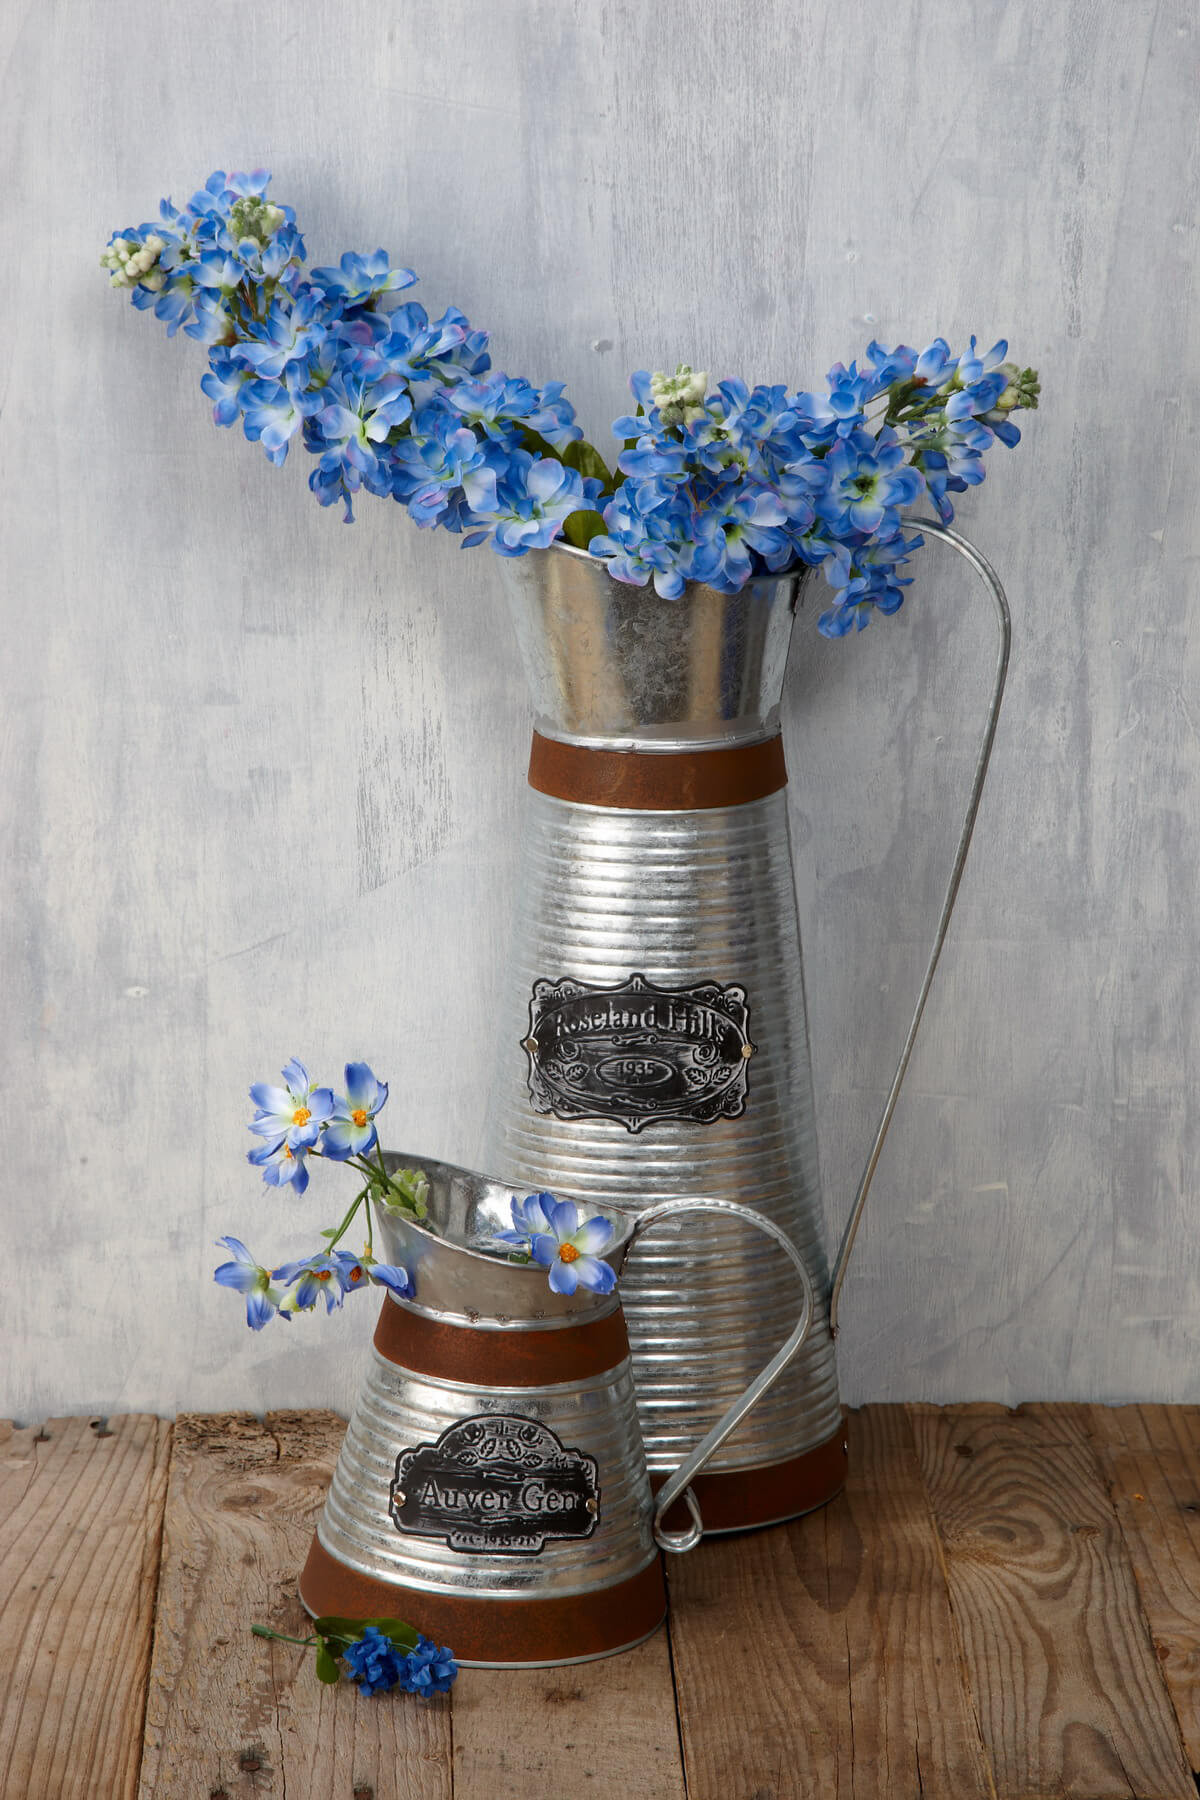 27 Unique Galvanized Pitcher Vase 2021 free download galvanized pitcher vase of galvanized flower vase qh64 roccommunity intended for beautiful galvanized pitcher small lc17